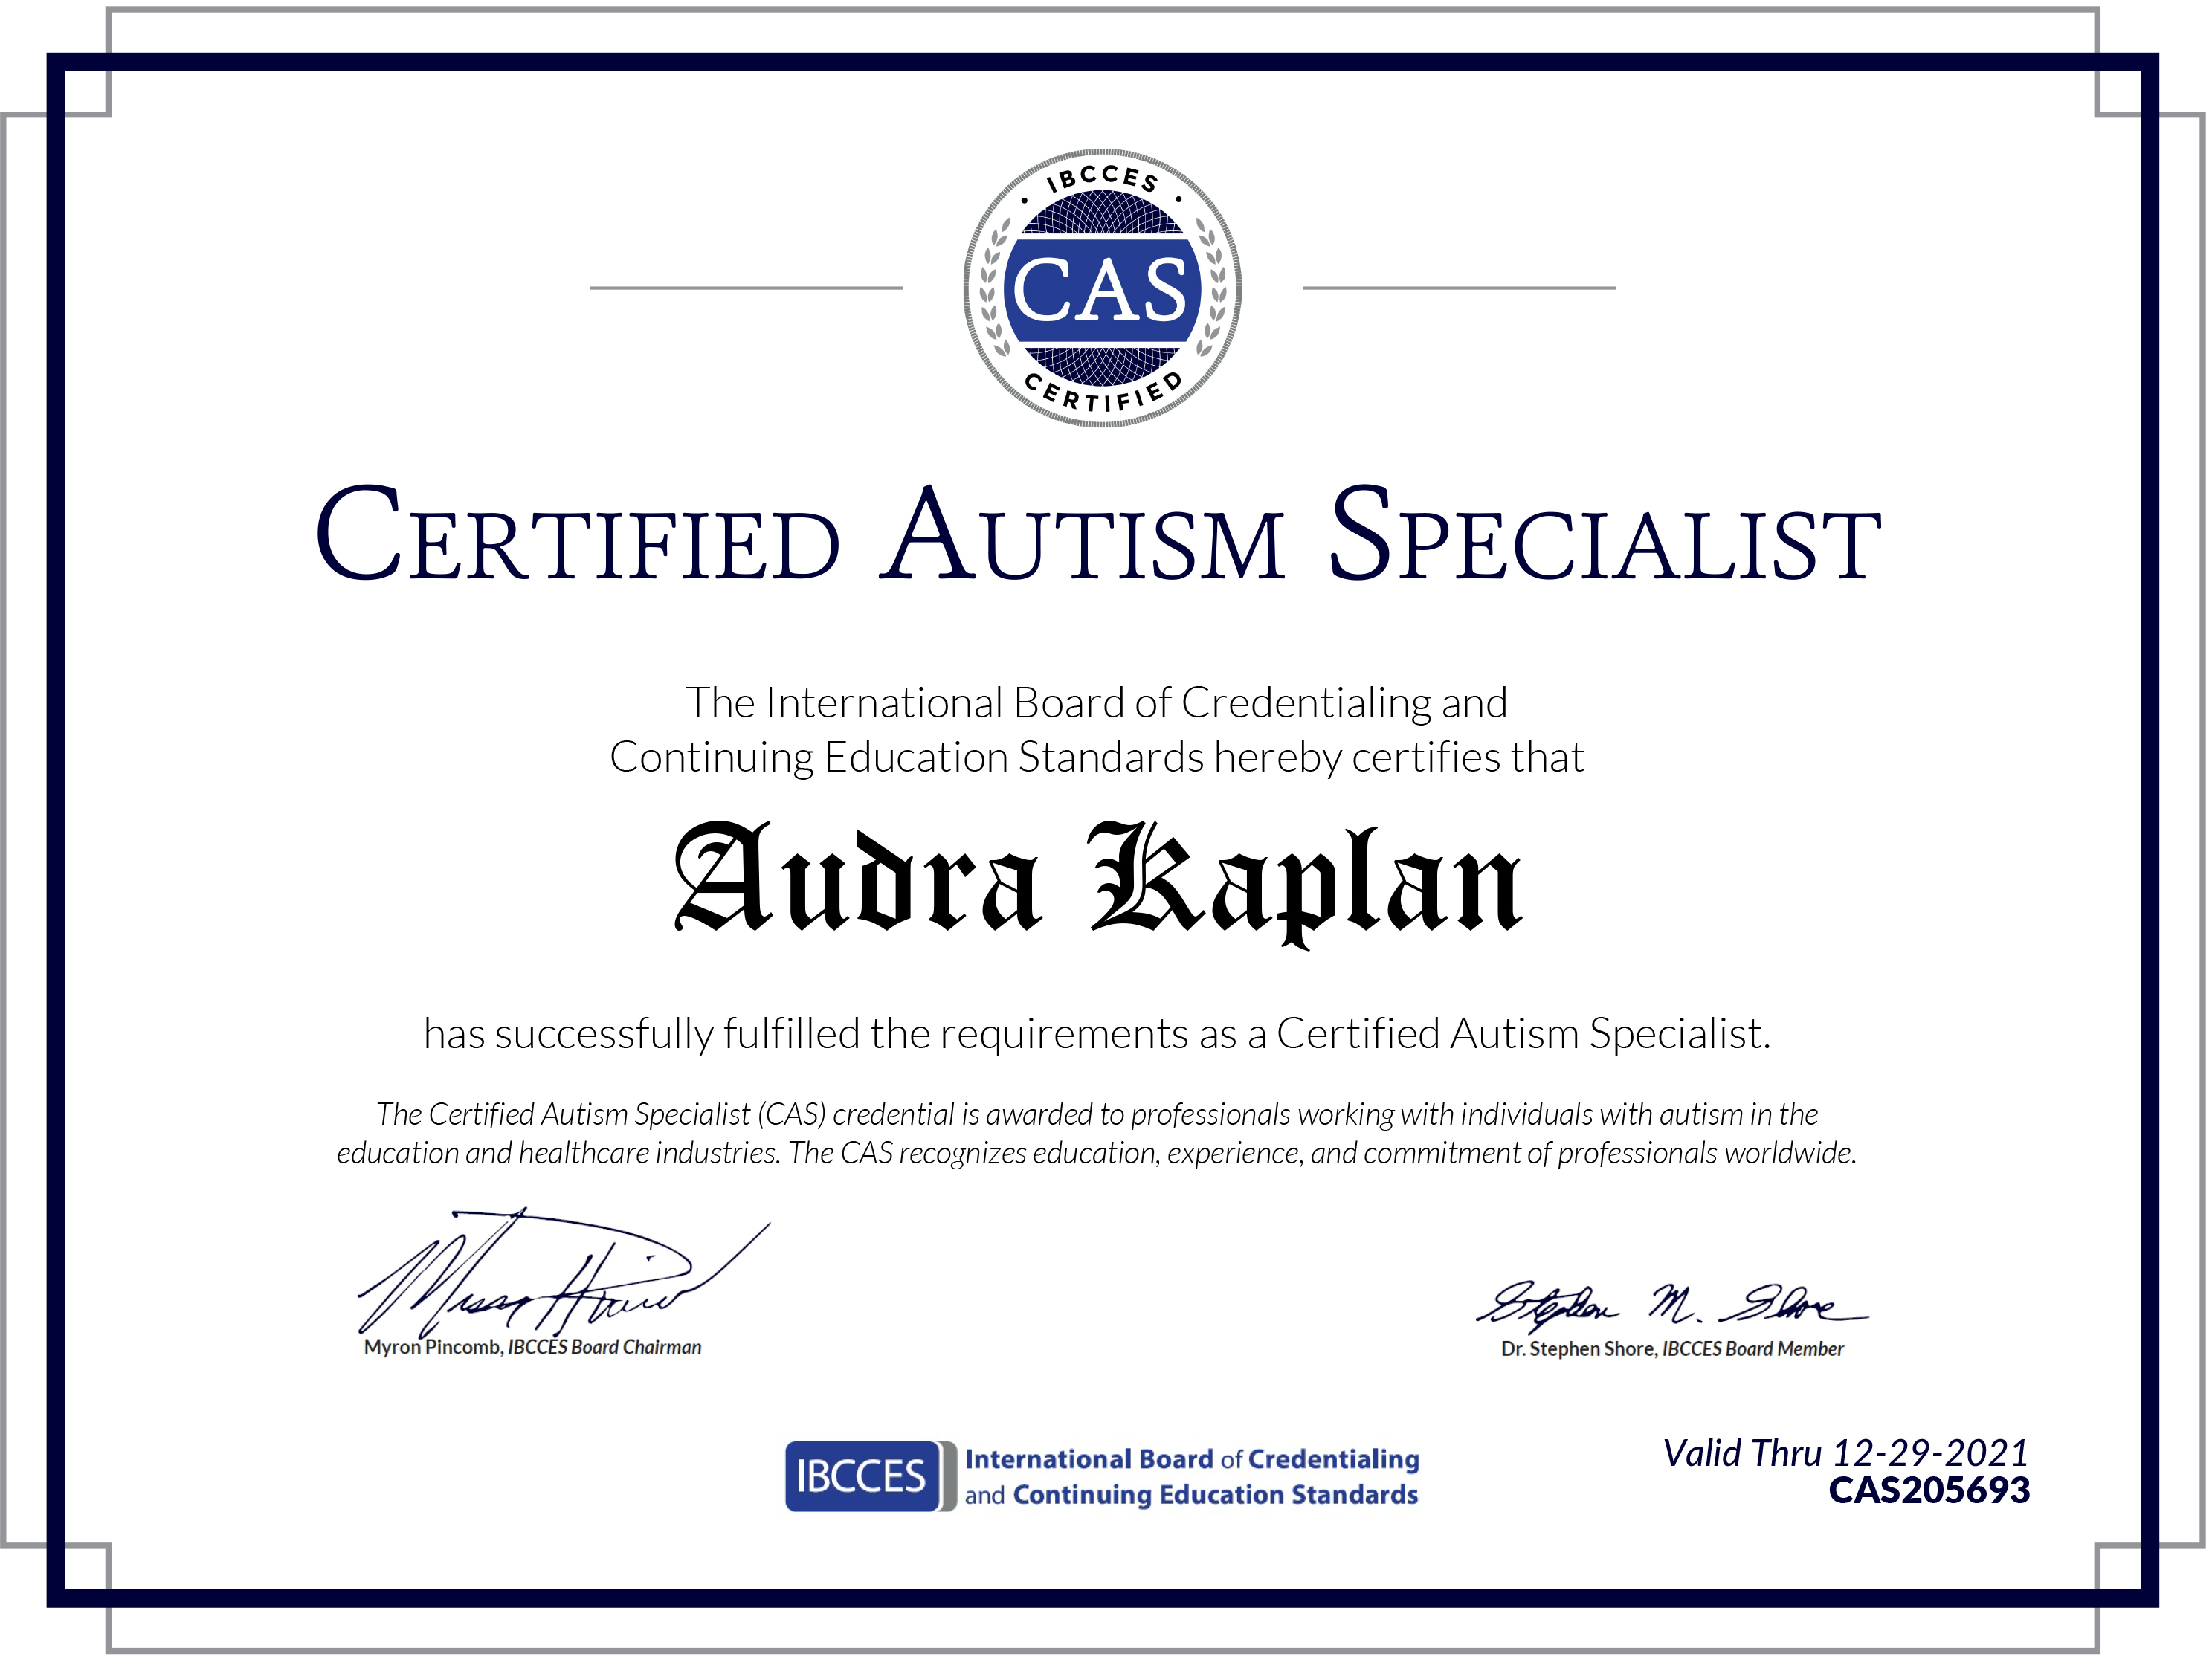 Certified Autism Specialist Certificate Dr. Audra Kaplan Ramah Darom Tikvah Support Program